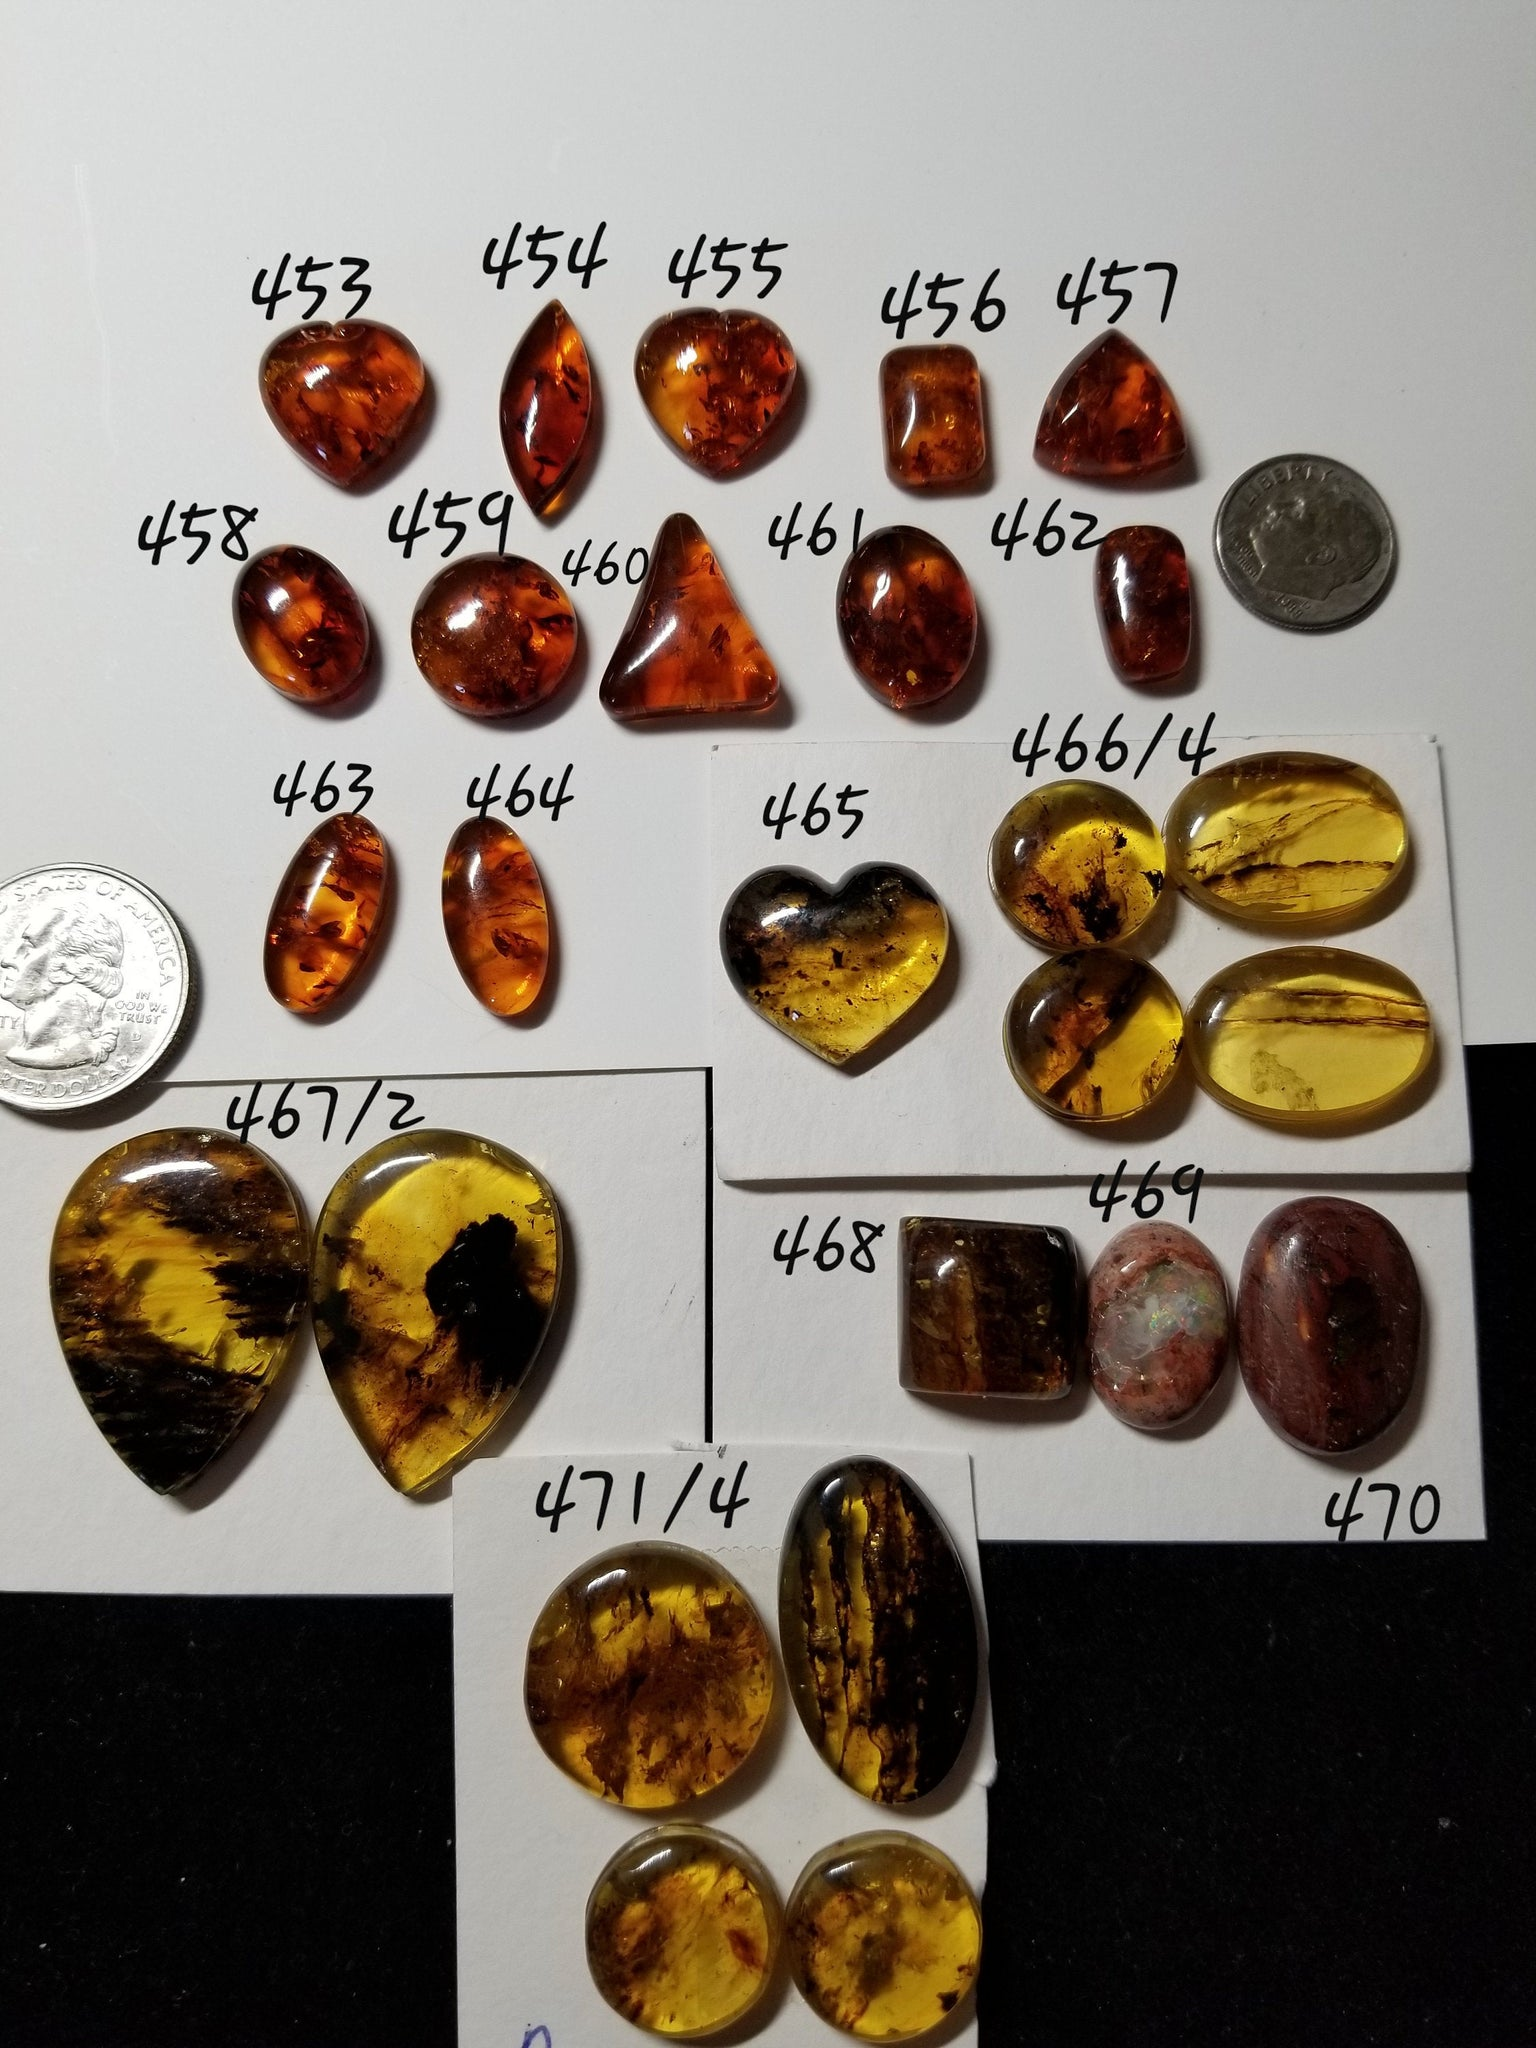 50f. Baltic Amber, amber heart, Mexican opal, Mexican Amber